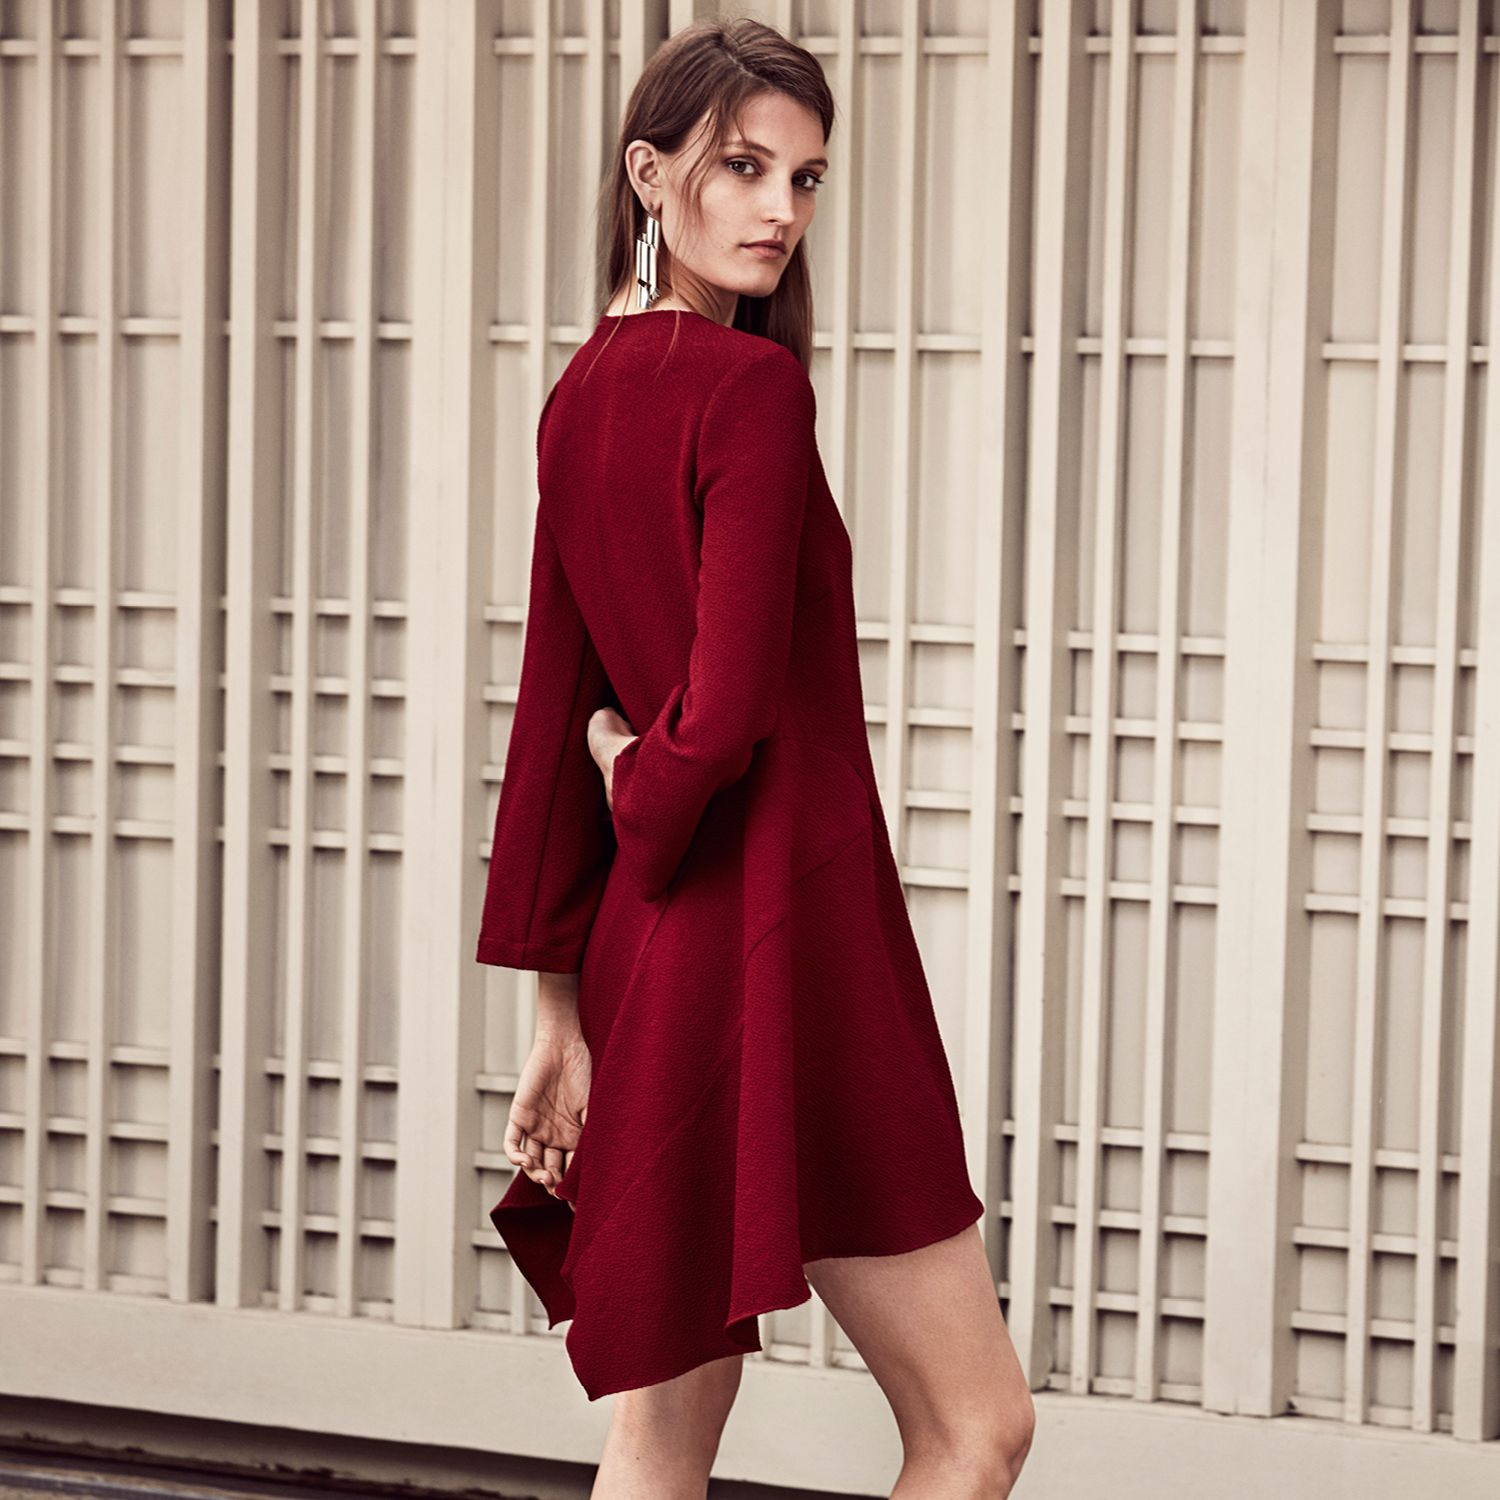 BCBG_PREFALL16_6.30_EDITORIAL_SOCIAL_MEDIA_IMAGES_18.jpg